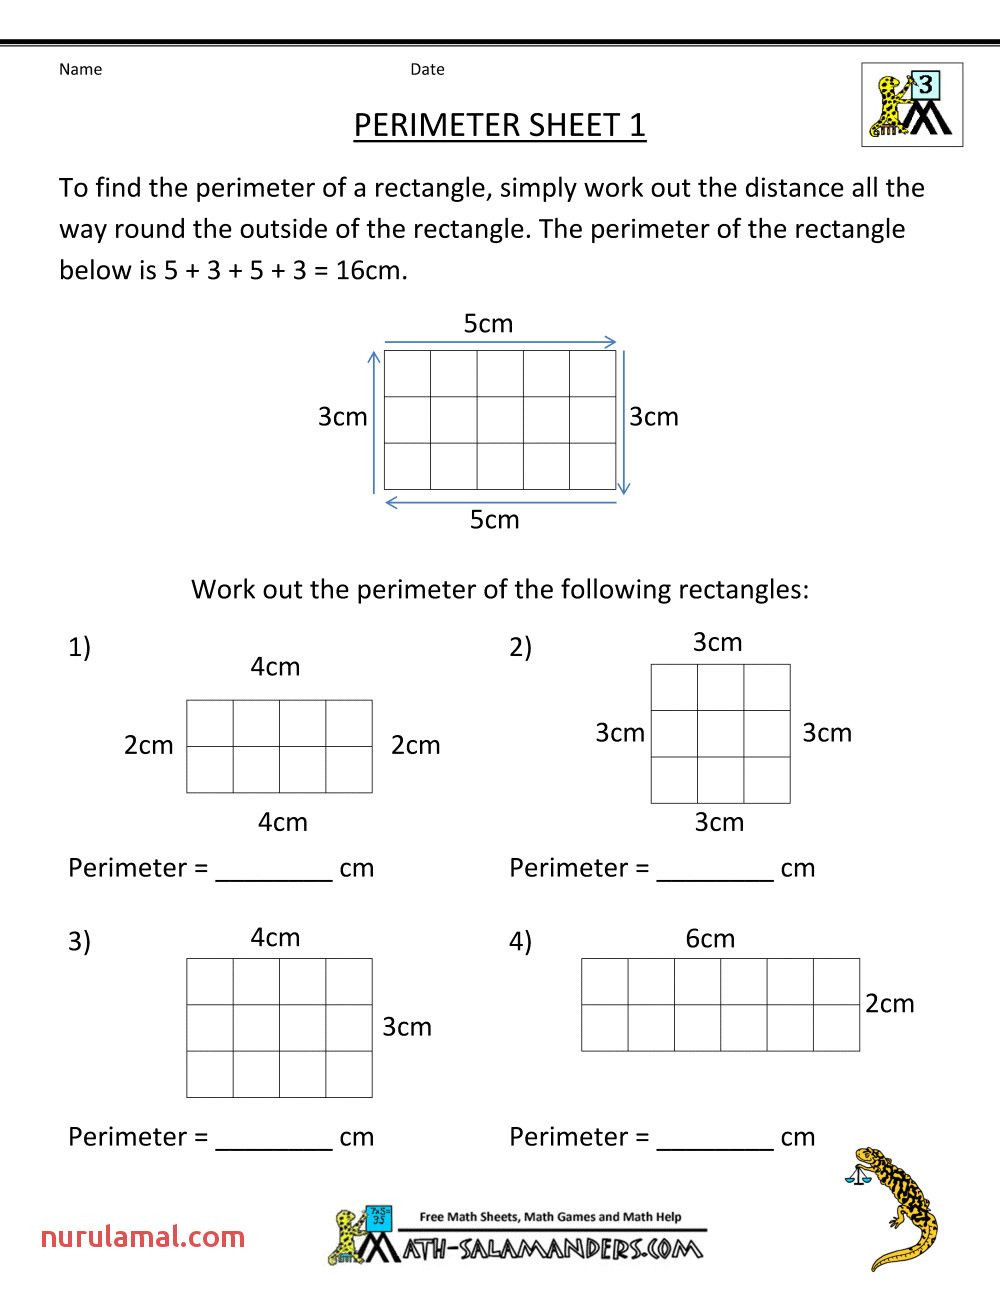 Perimeter Worksheets for 3rd Grade Free 3rd Grade Math Worksheets Perimeter 1 In 2020